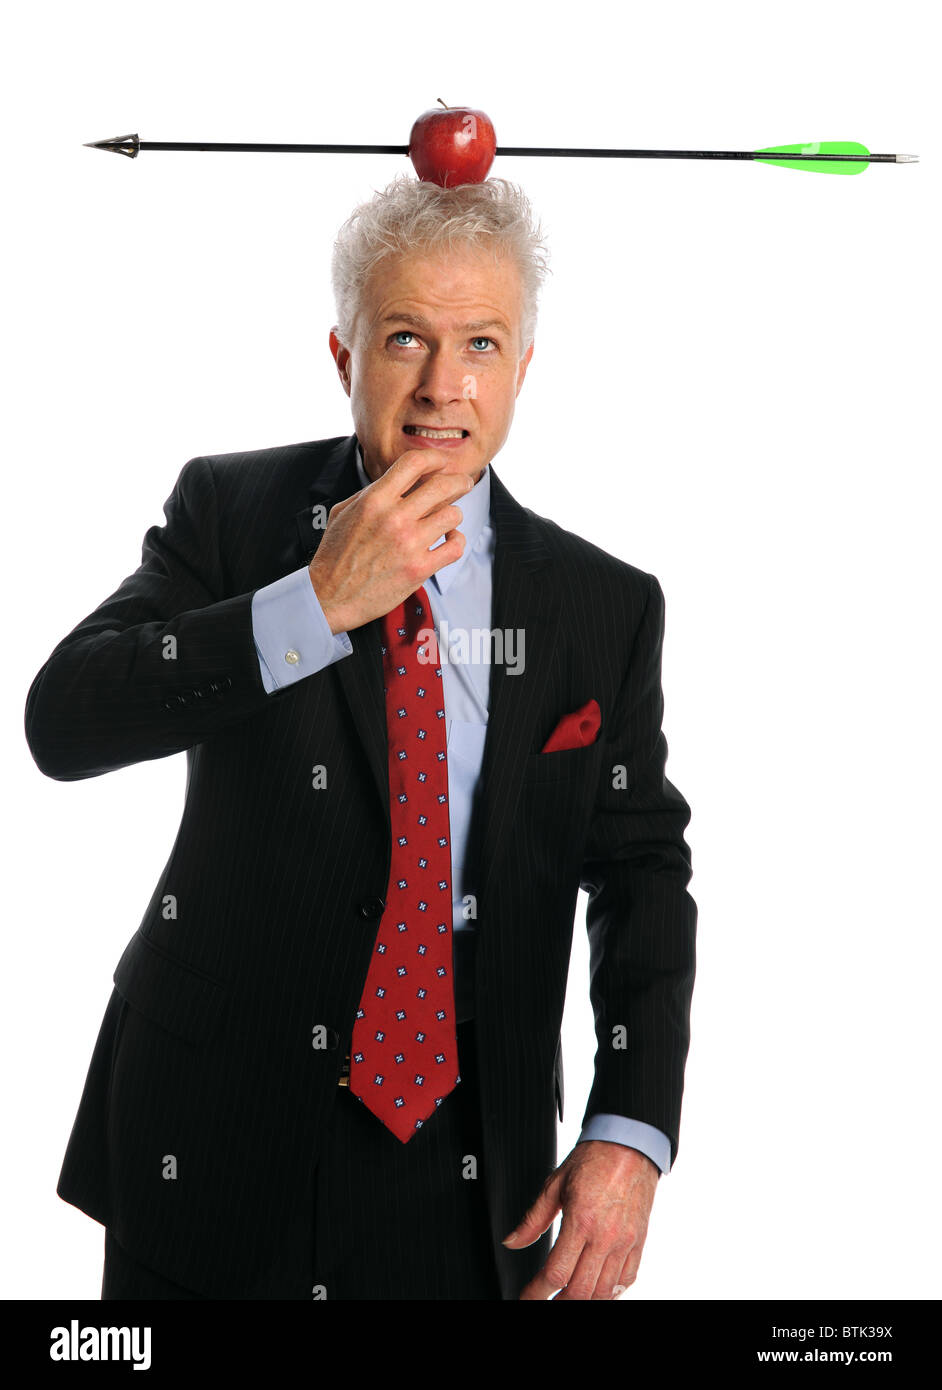 Businessman with apple and arrow on top of head isolated over white background - Stock Image